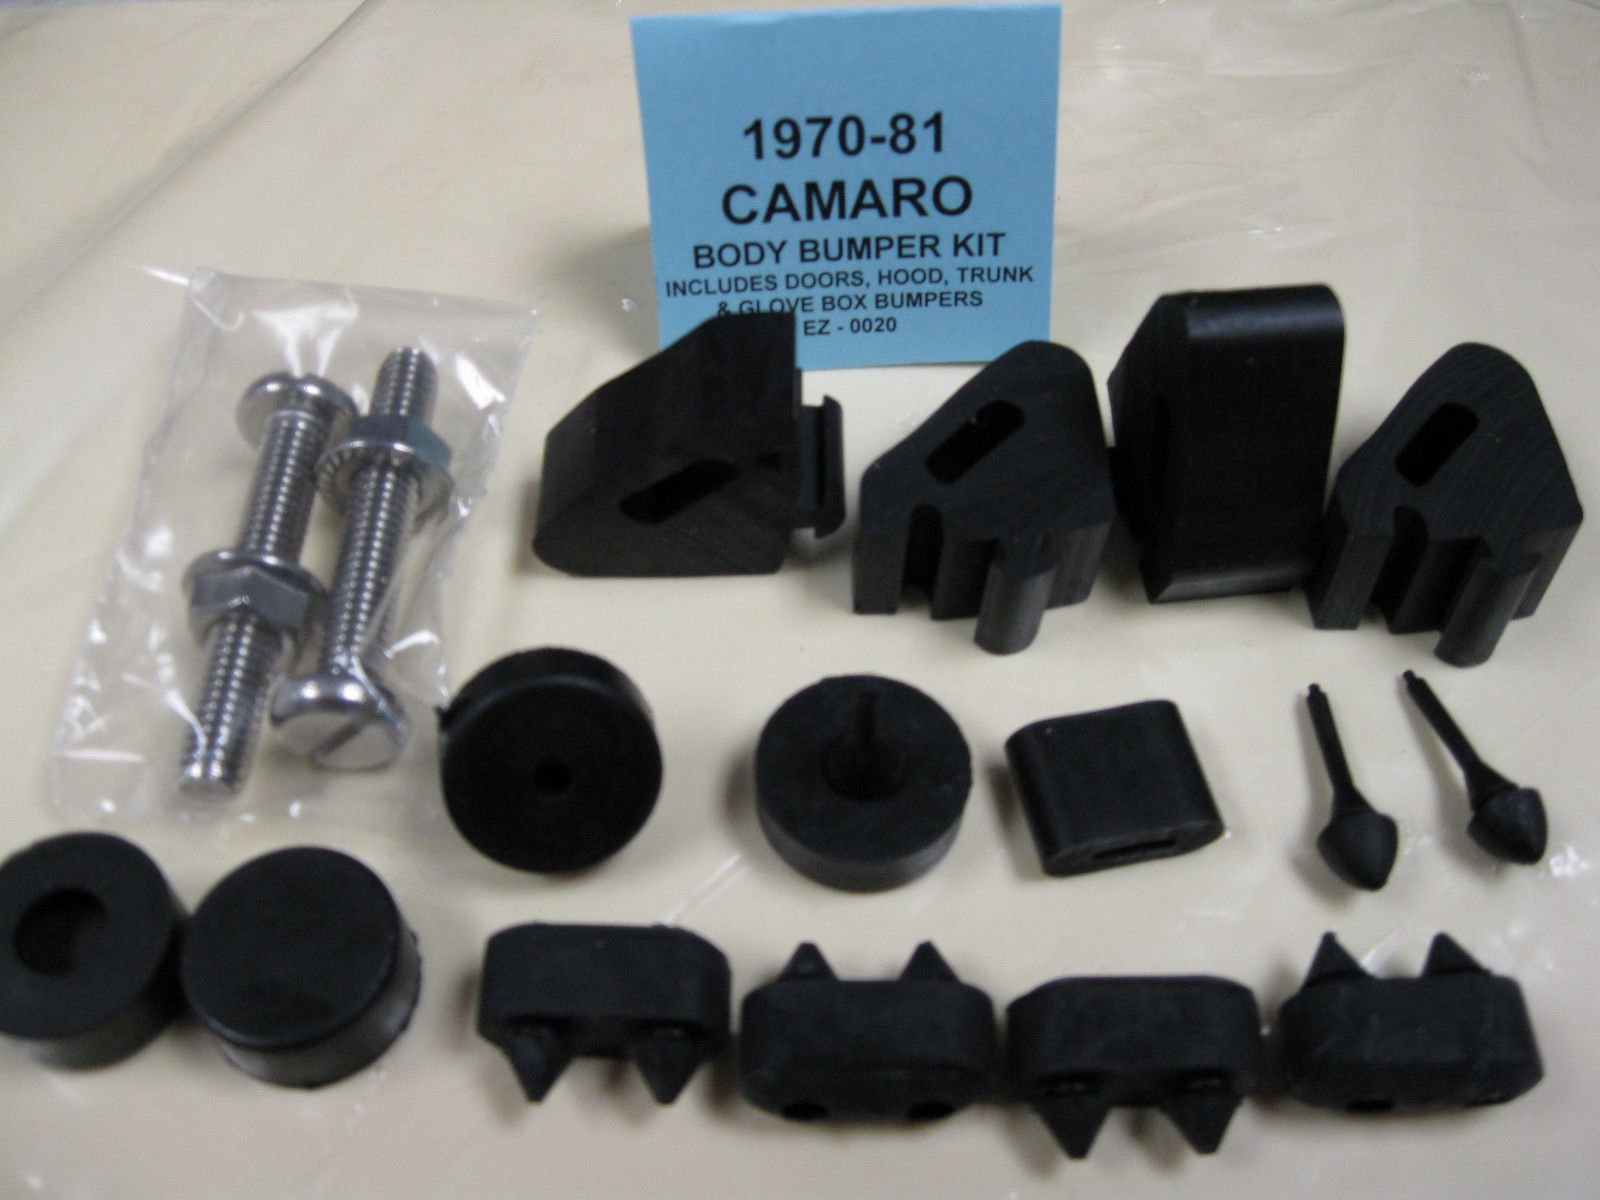 Find any Camaro Part with this book 1973 1974 1975 1976 1977 1978 1979 1980 1981